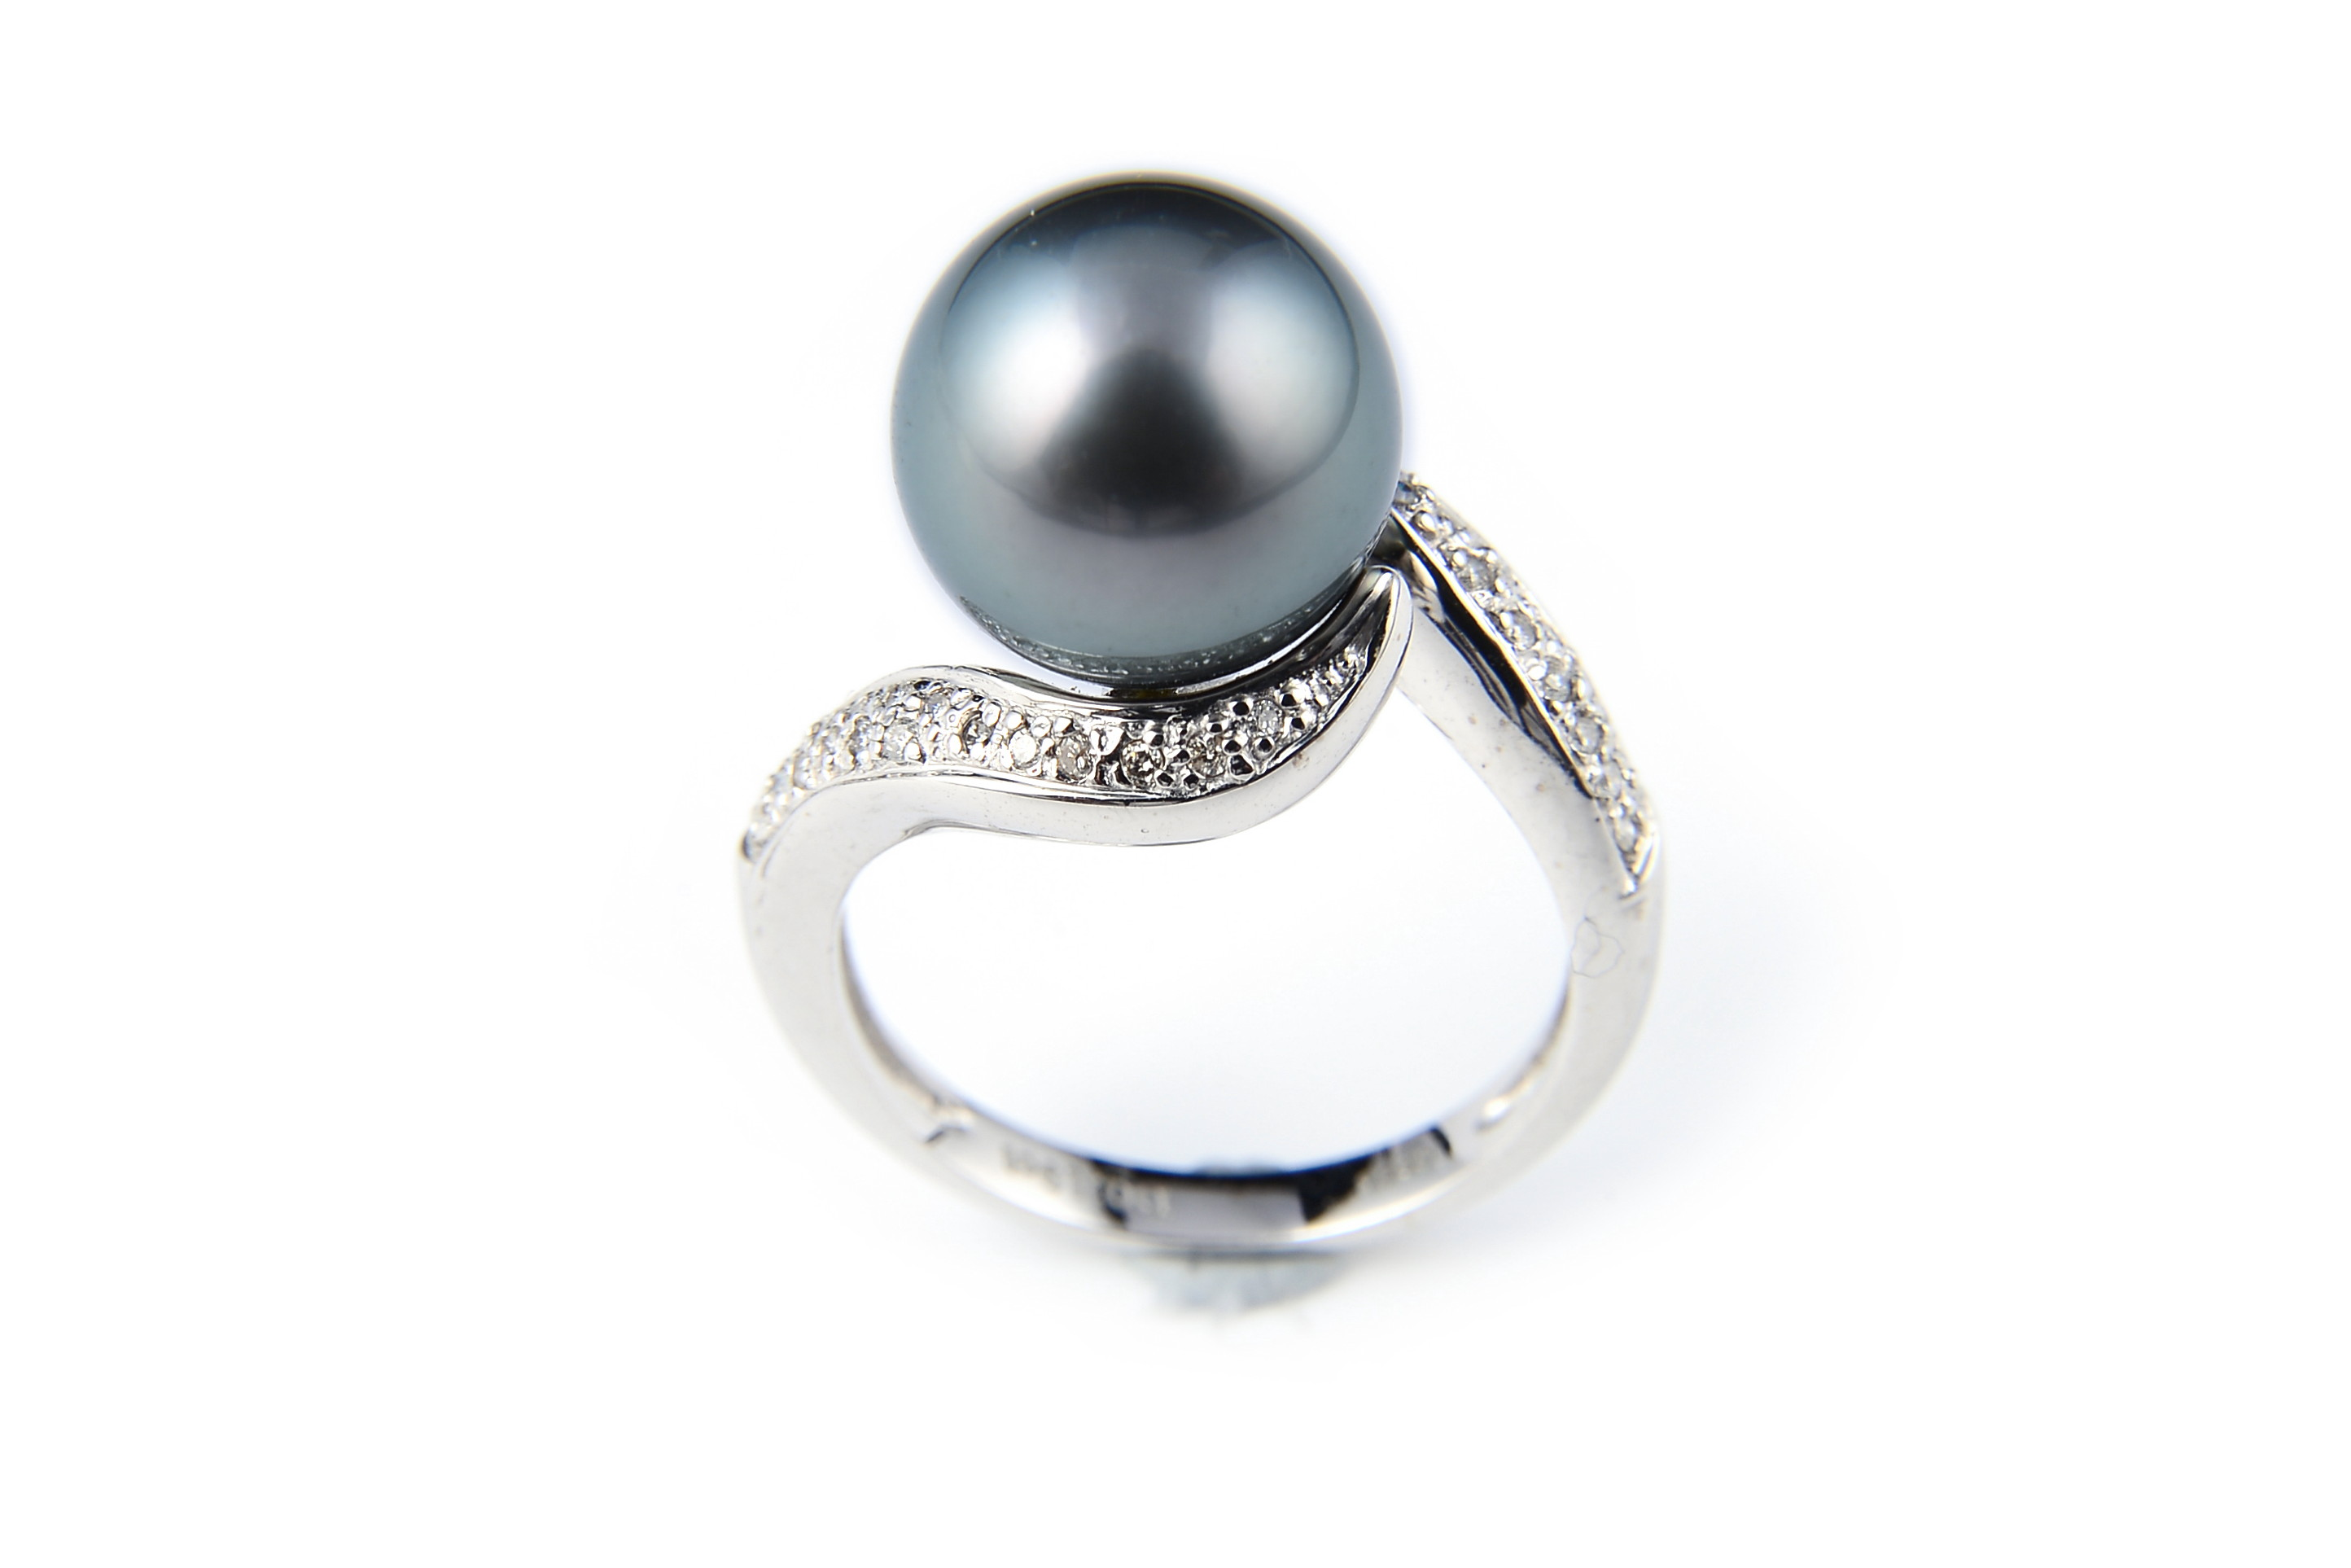 designer delicate charms best wedding ring gift szcoya girlfriend channel for from pink setting com rings product mosaic manual a dhgate pearl